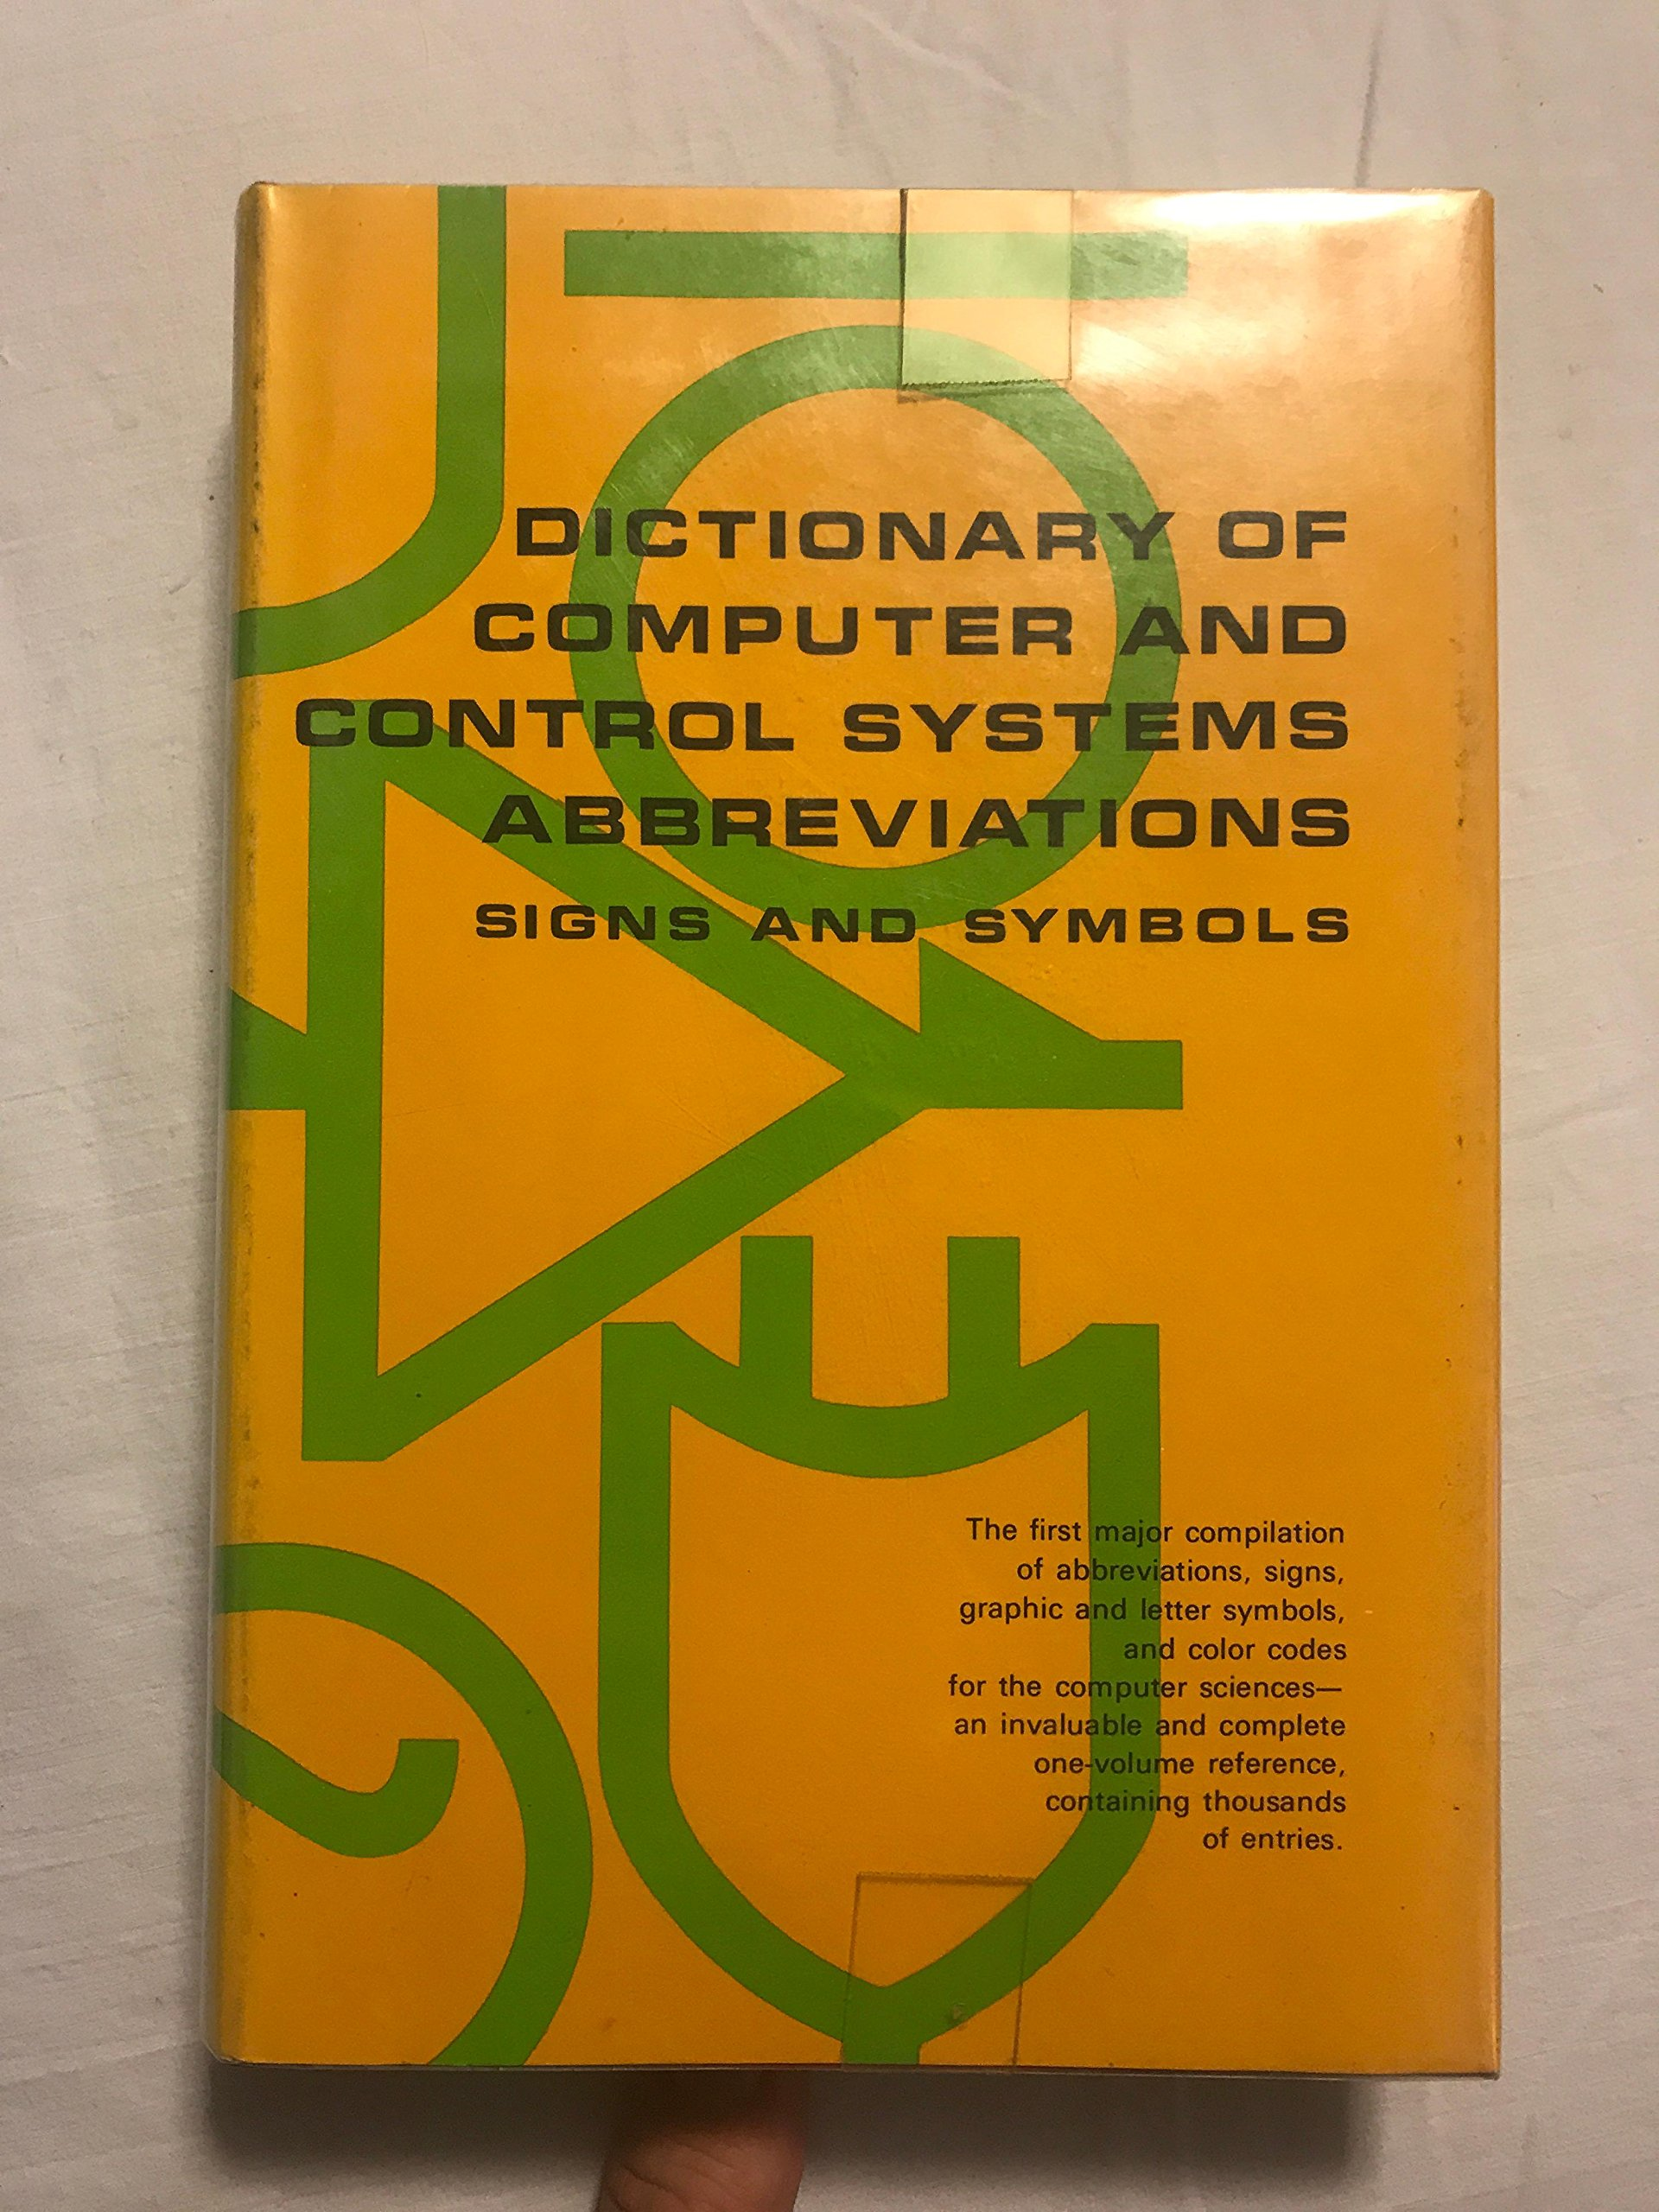 Dictionary Of Computer And Control Systems Abbreviations Signs And